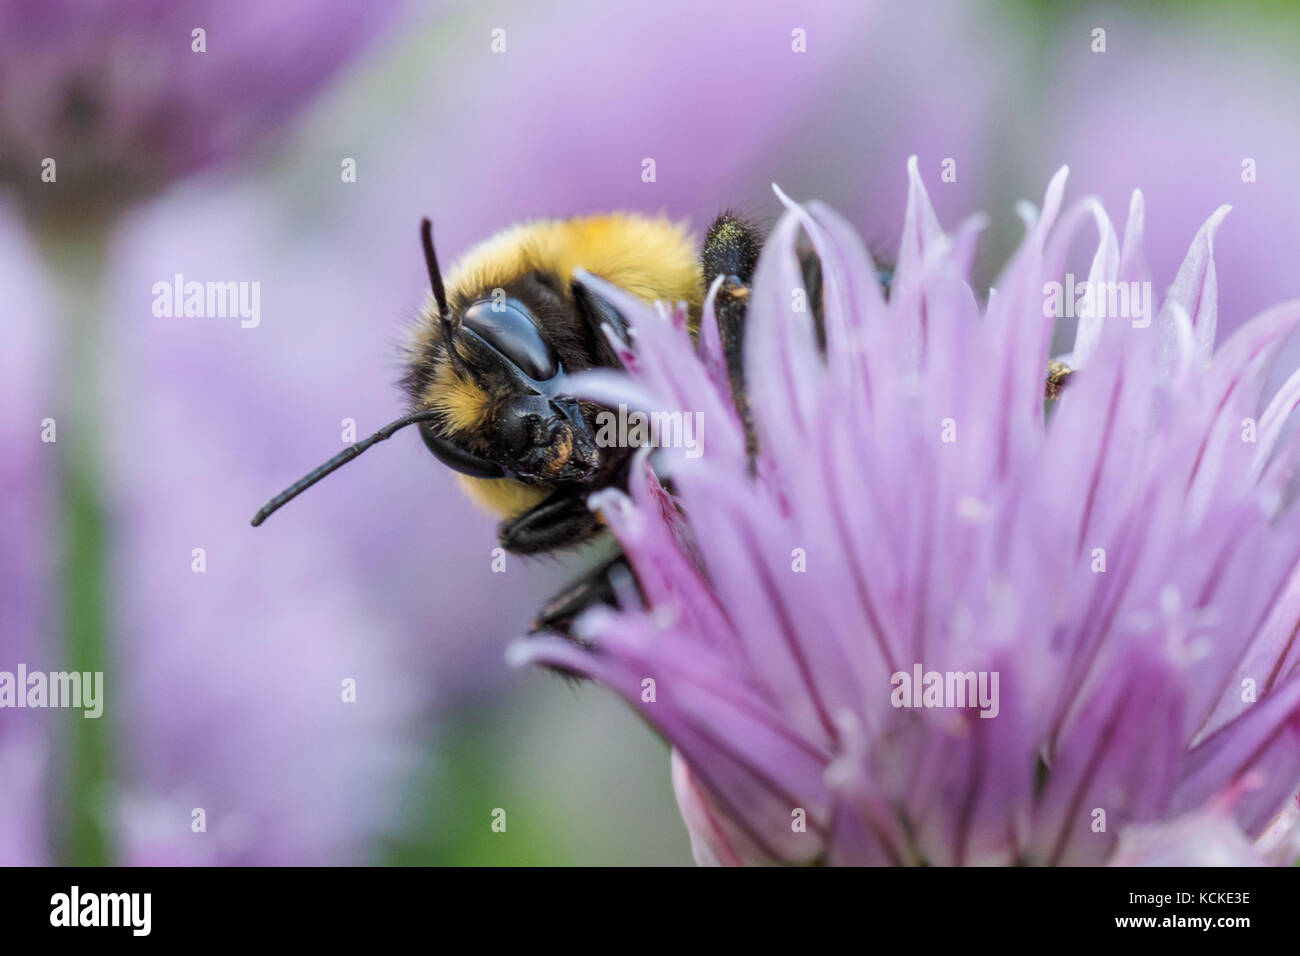 Tricolored Bumble Bee, Bombus ternarius, on chive flowers, Warman, Saskatchewan, Canada Stock Photo